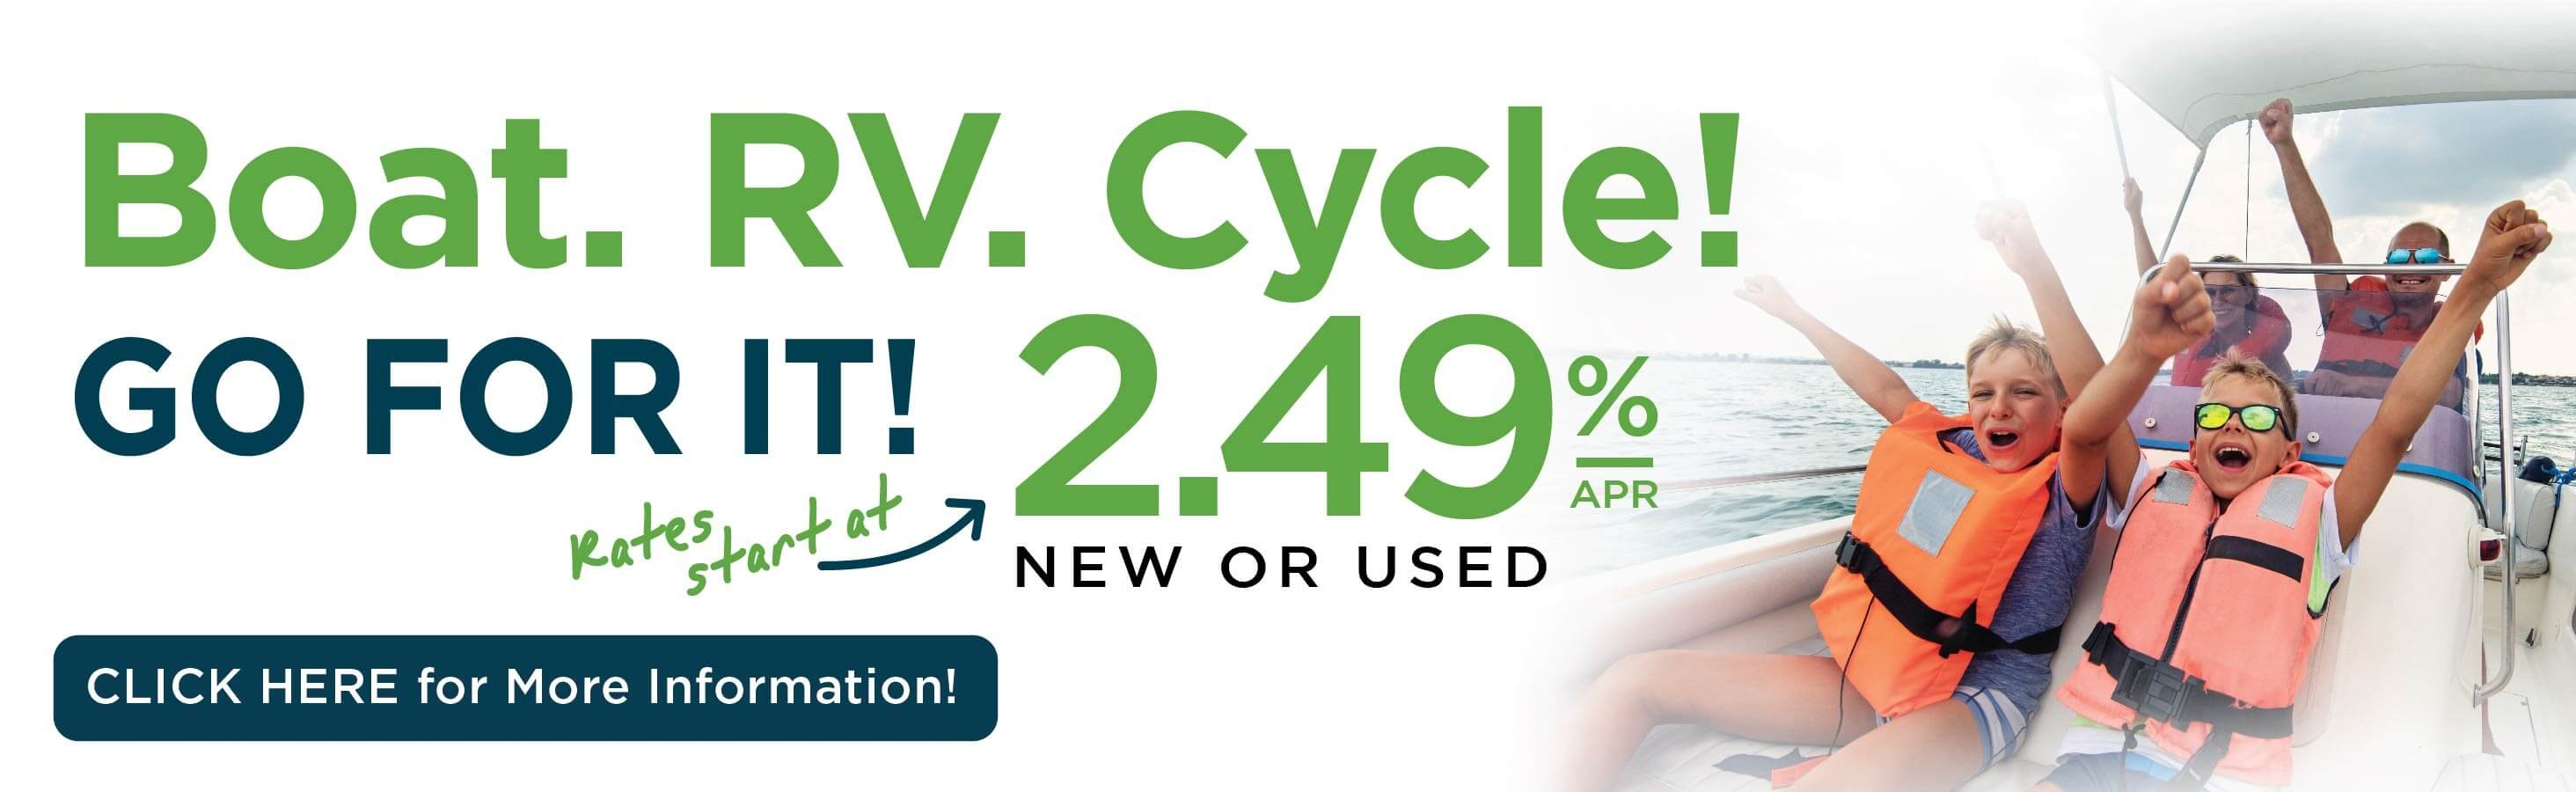 Low Rate on Boats, RVs, Cycles and More!